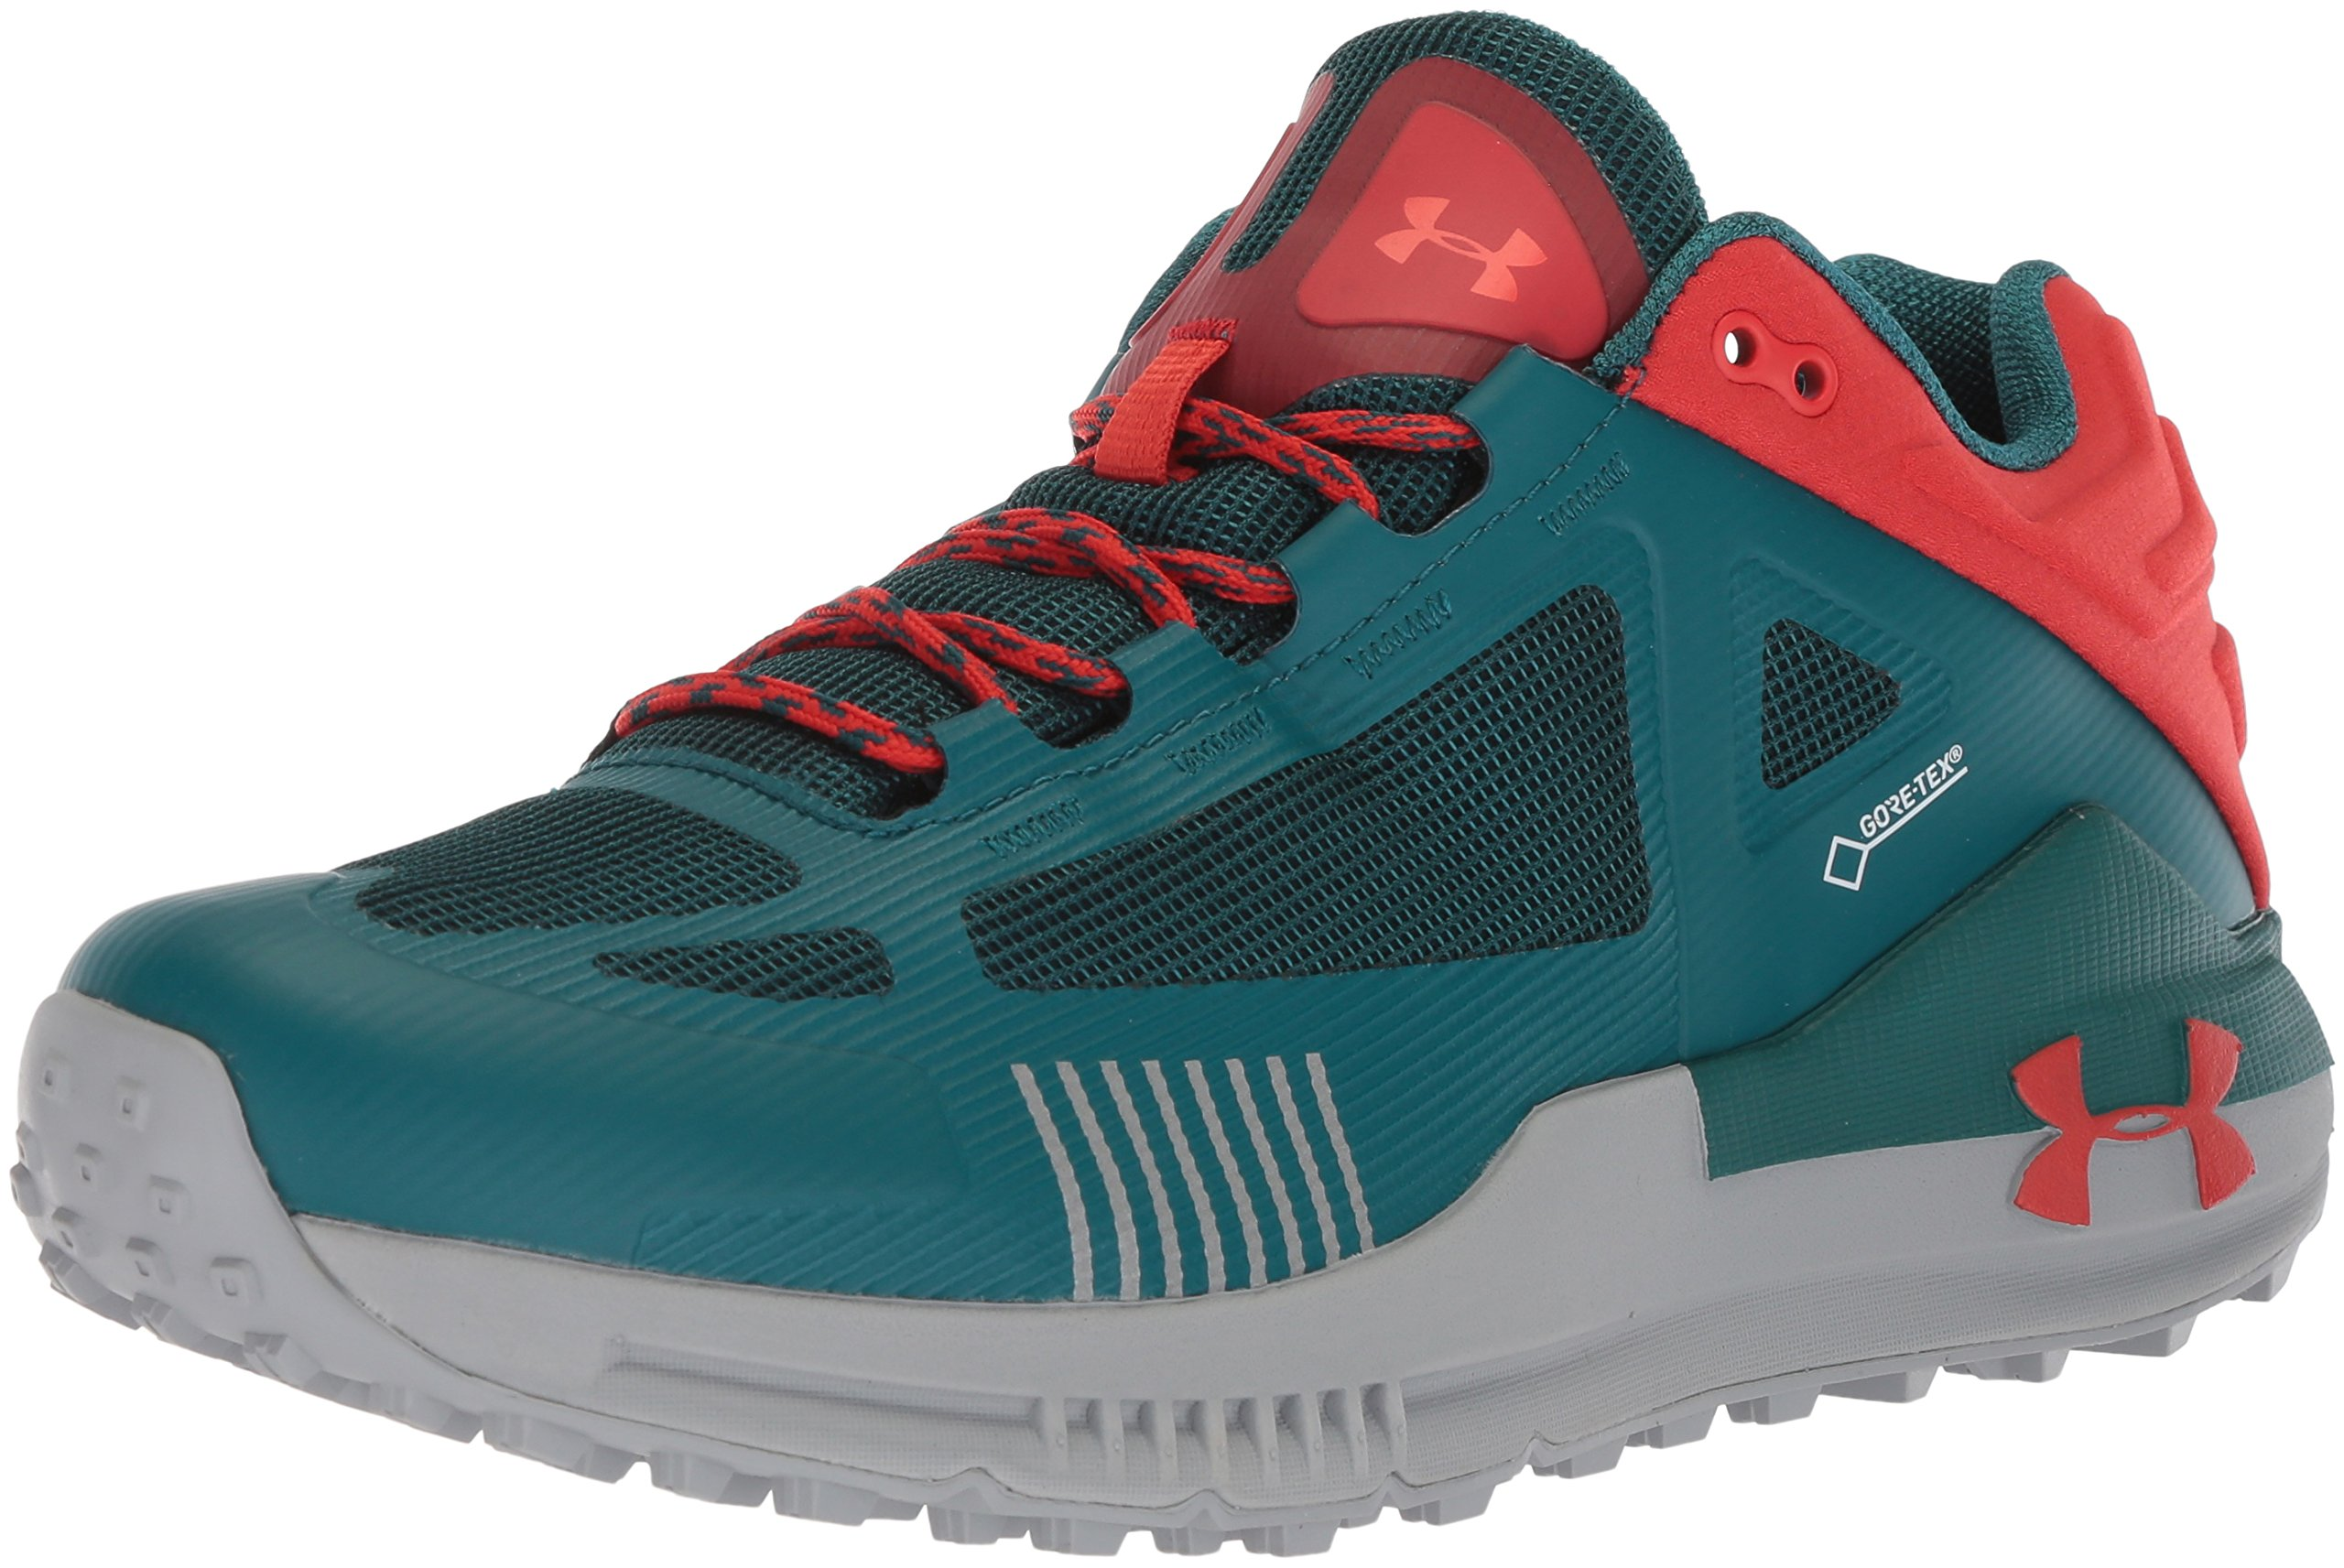 Under Armour Men's Verge 2.0 Low GORE-TEX, Tourmaline Teal (300)/Sultry, 8 by Under Armour